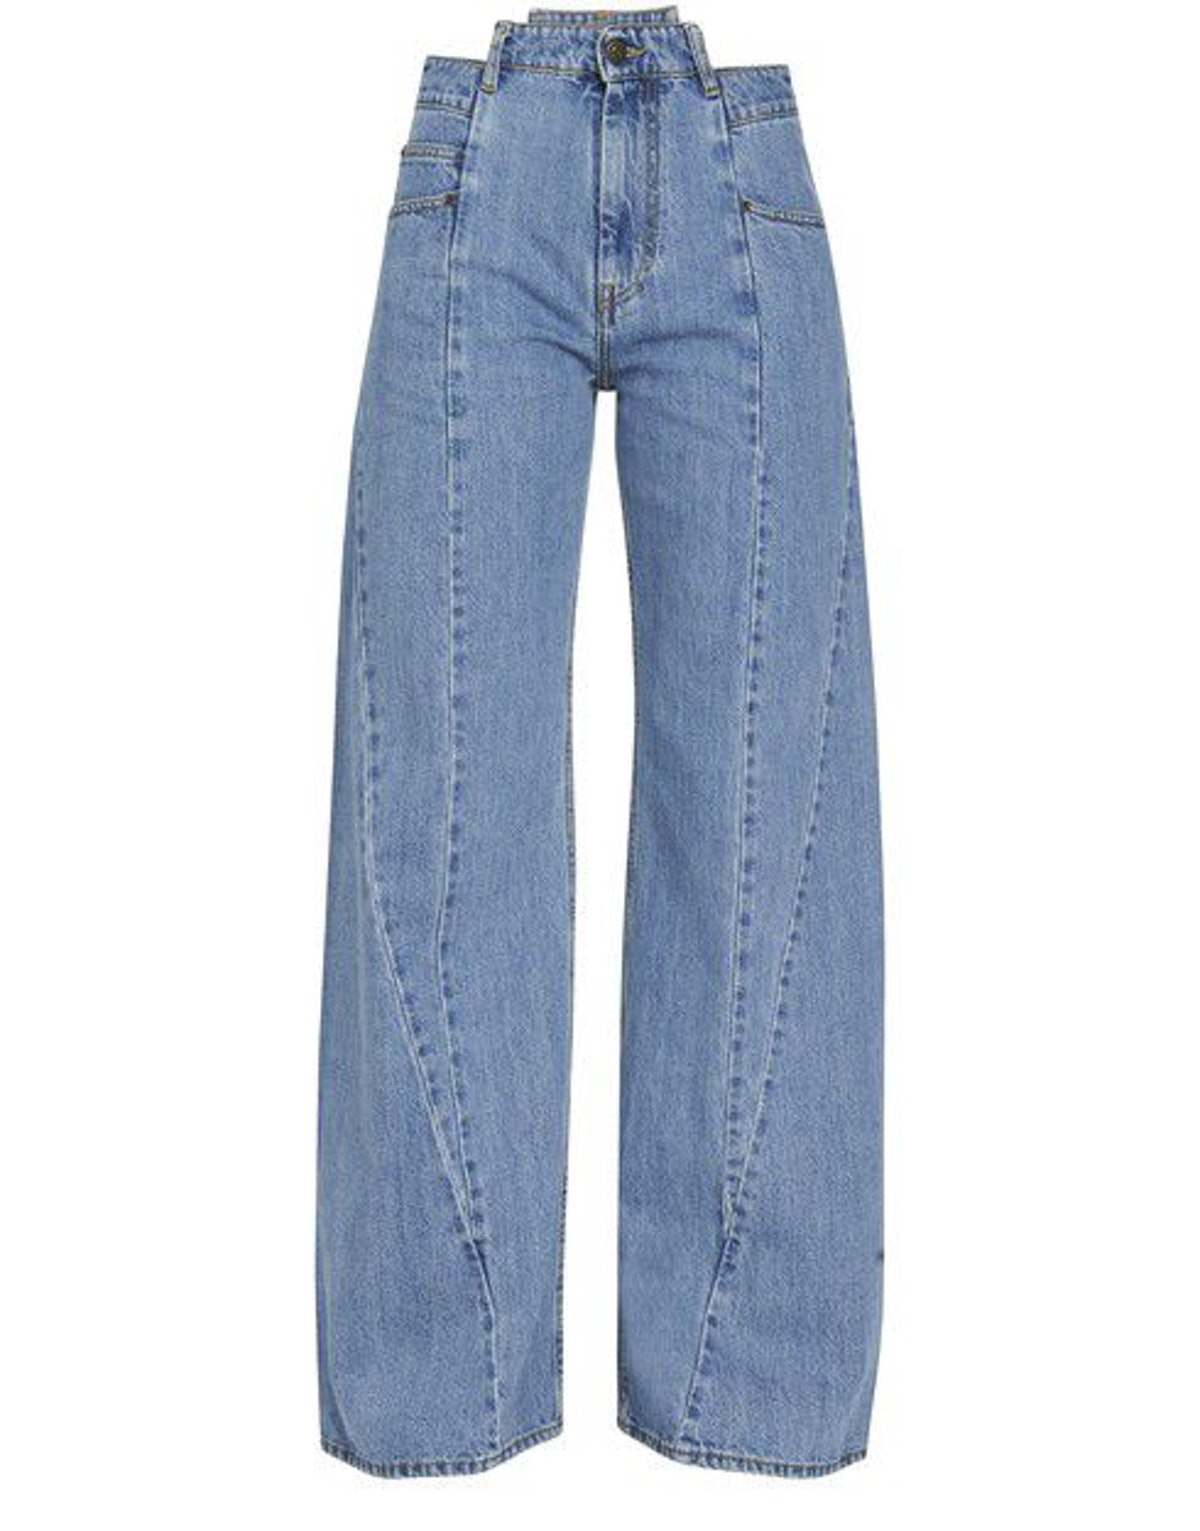 Jeans: image 1